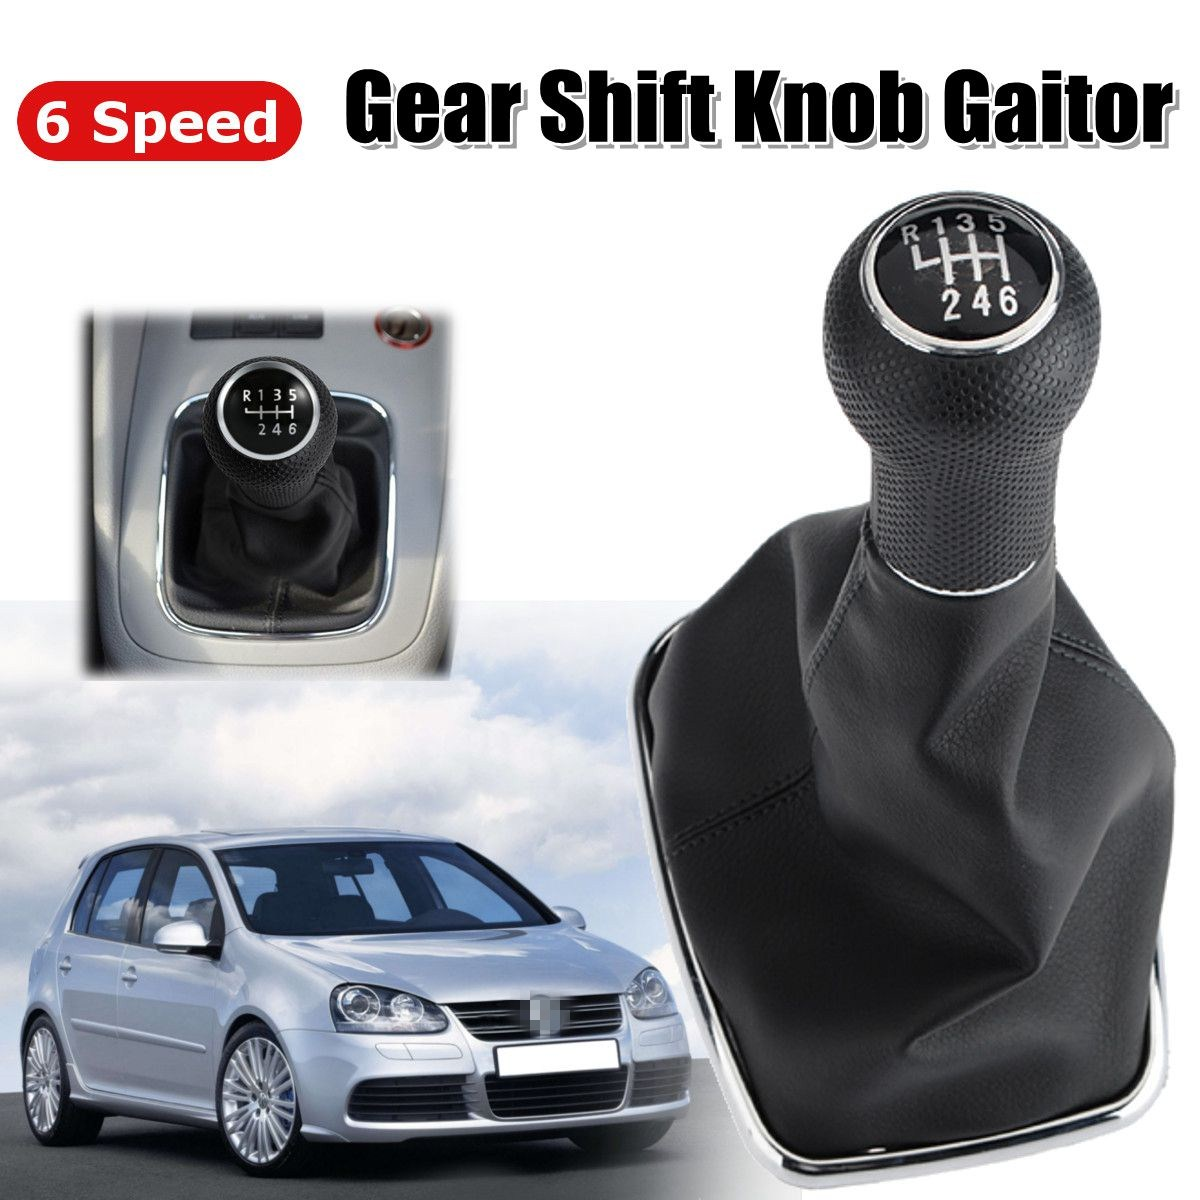 Atv,rv,boat & Other Vehicle 2019 Latest Design Gear Knob Shift Boot No Base Frame 5 Speed For Jetta Bora Mk4